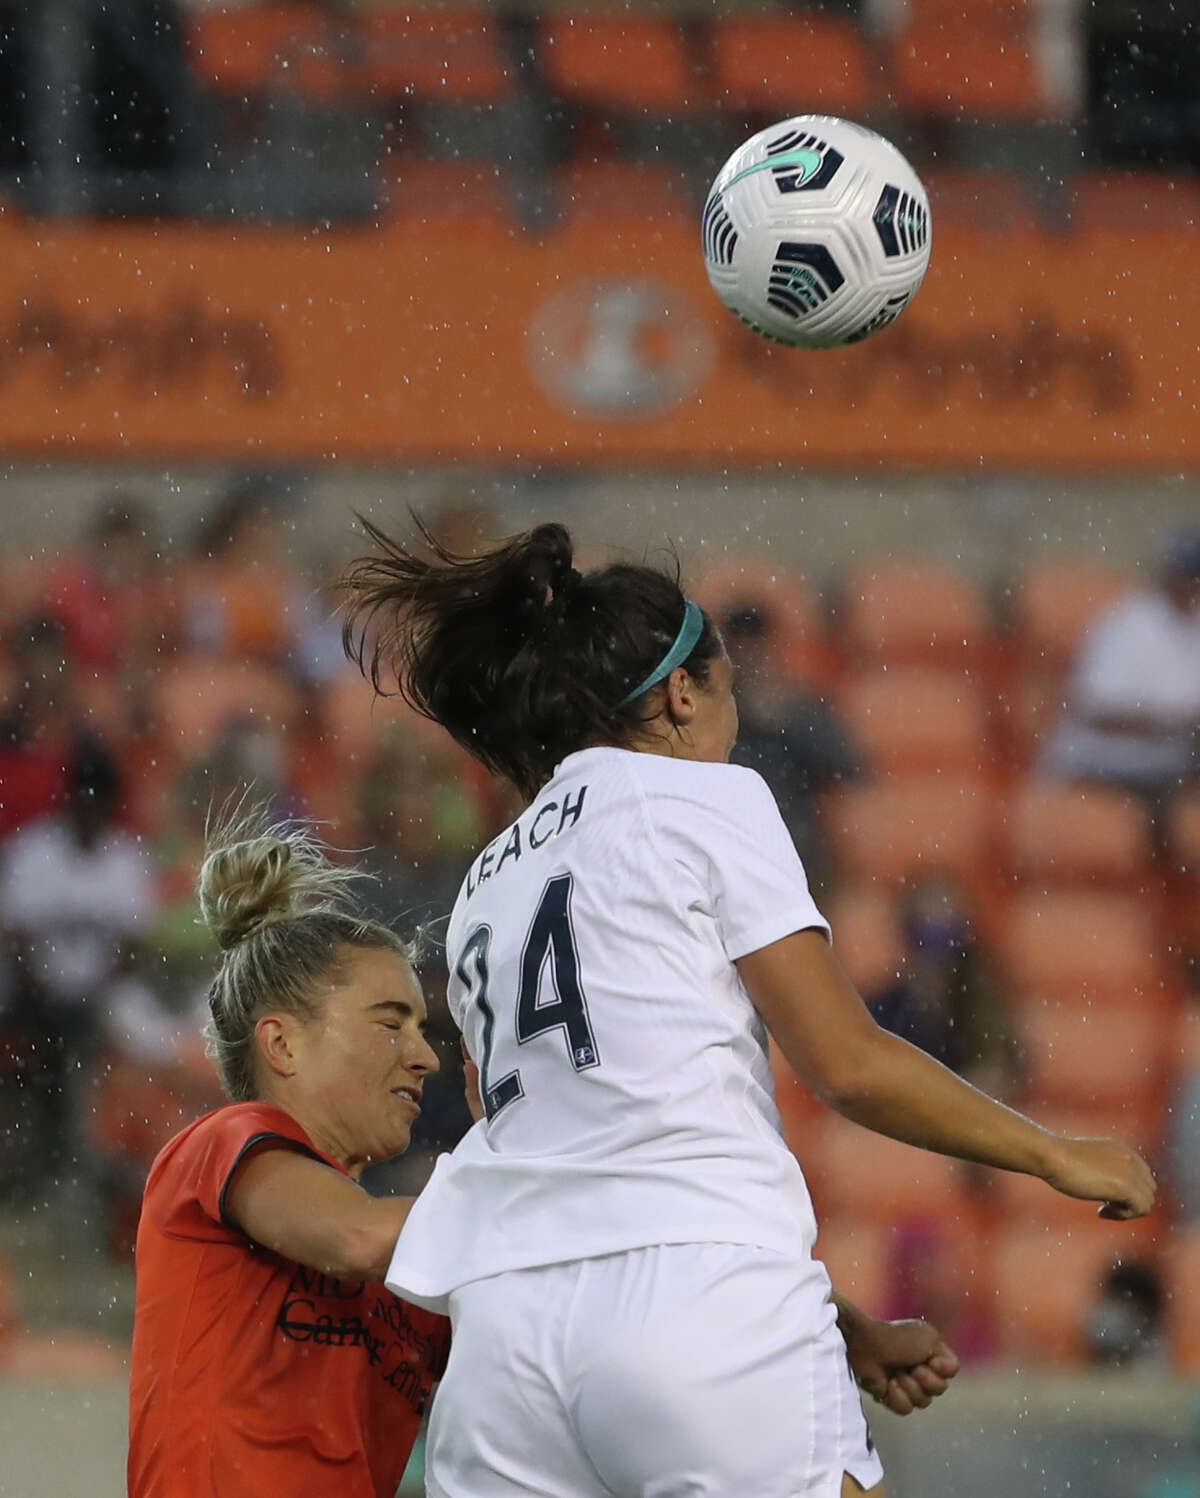 Houston Dash midfielder Kristie Mewis (19) and Kansas City defender Taylor Leach (24) battle for control of the ball during the first half of an NWSL match Sunday, May 23, 2021, at BBVA Stadium in Houston.